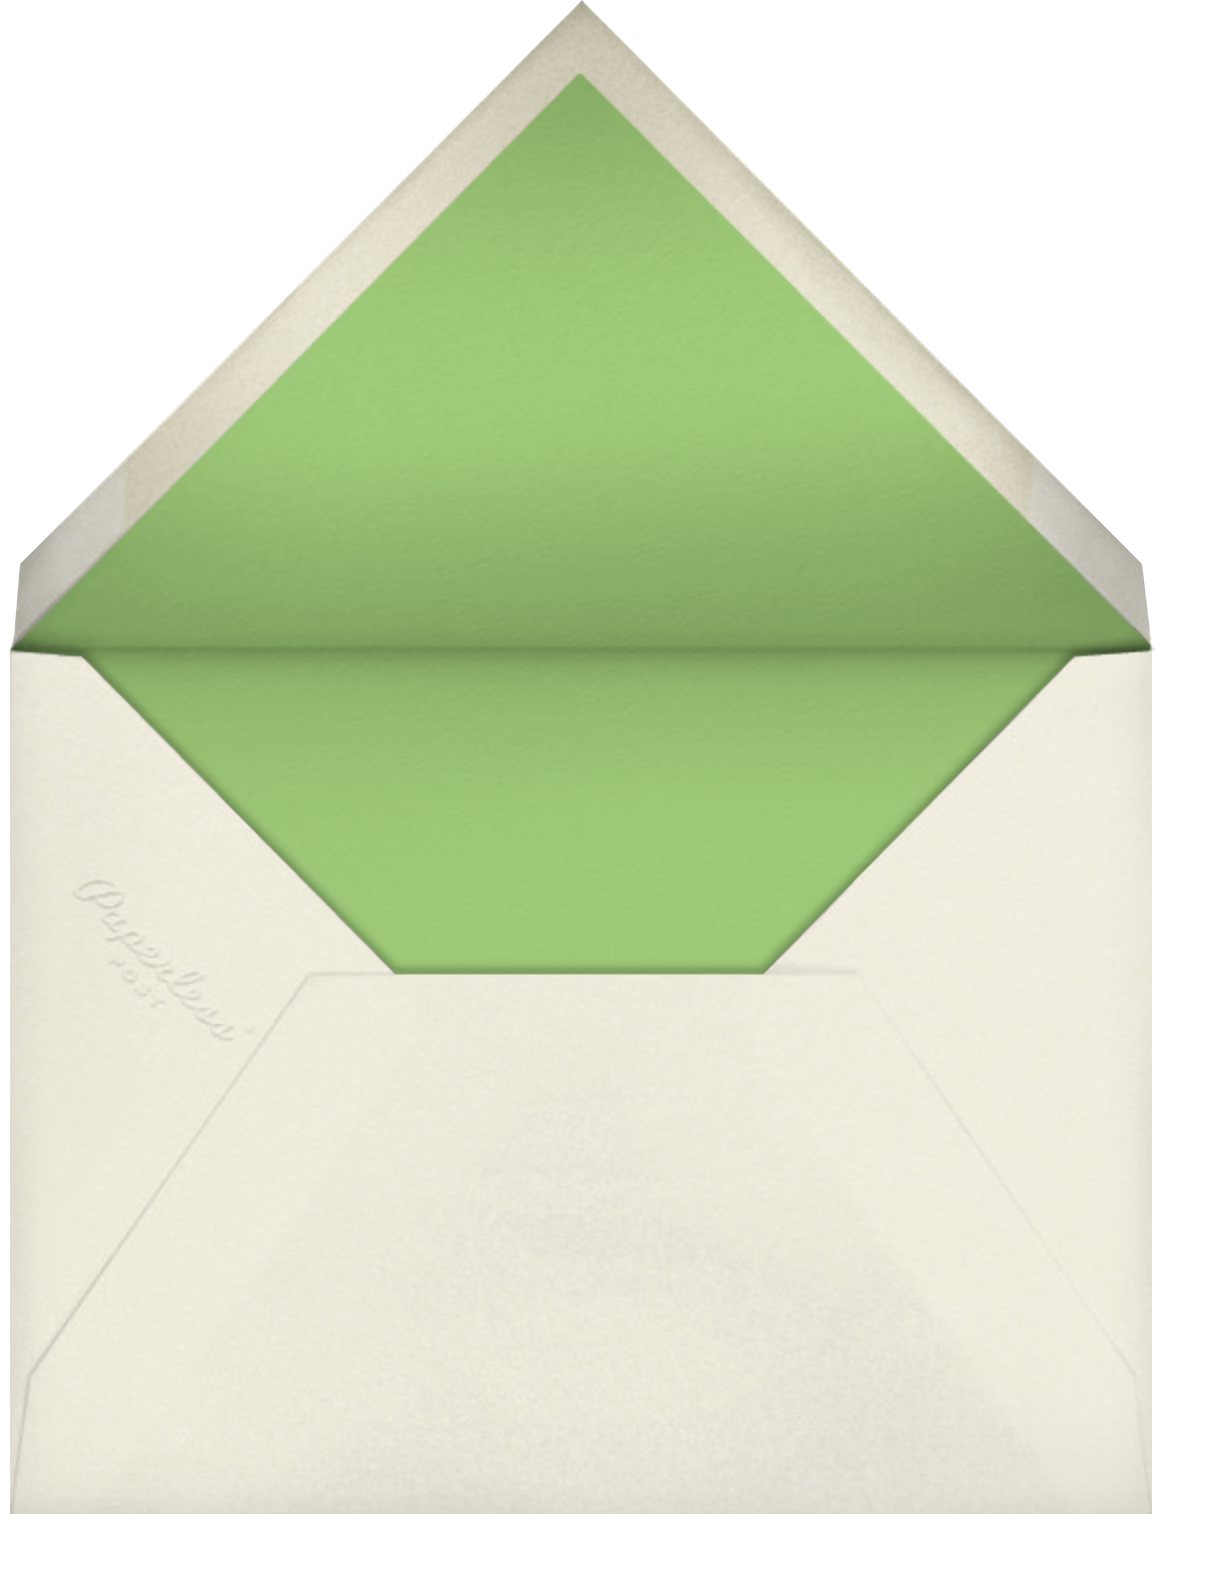 Louisa I (Thank You) - Spring Green - Paperless Post - Personalized stationery - envelope back